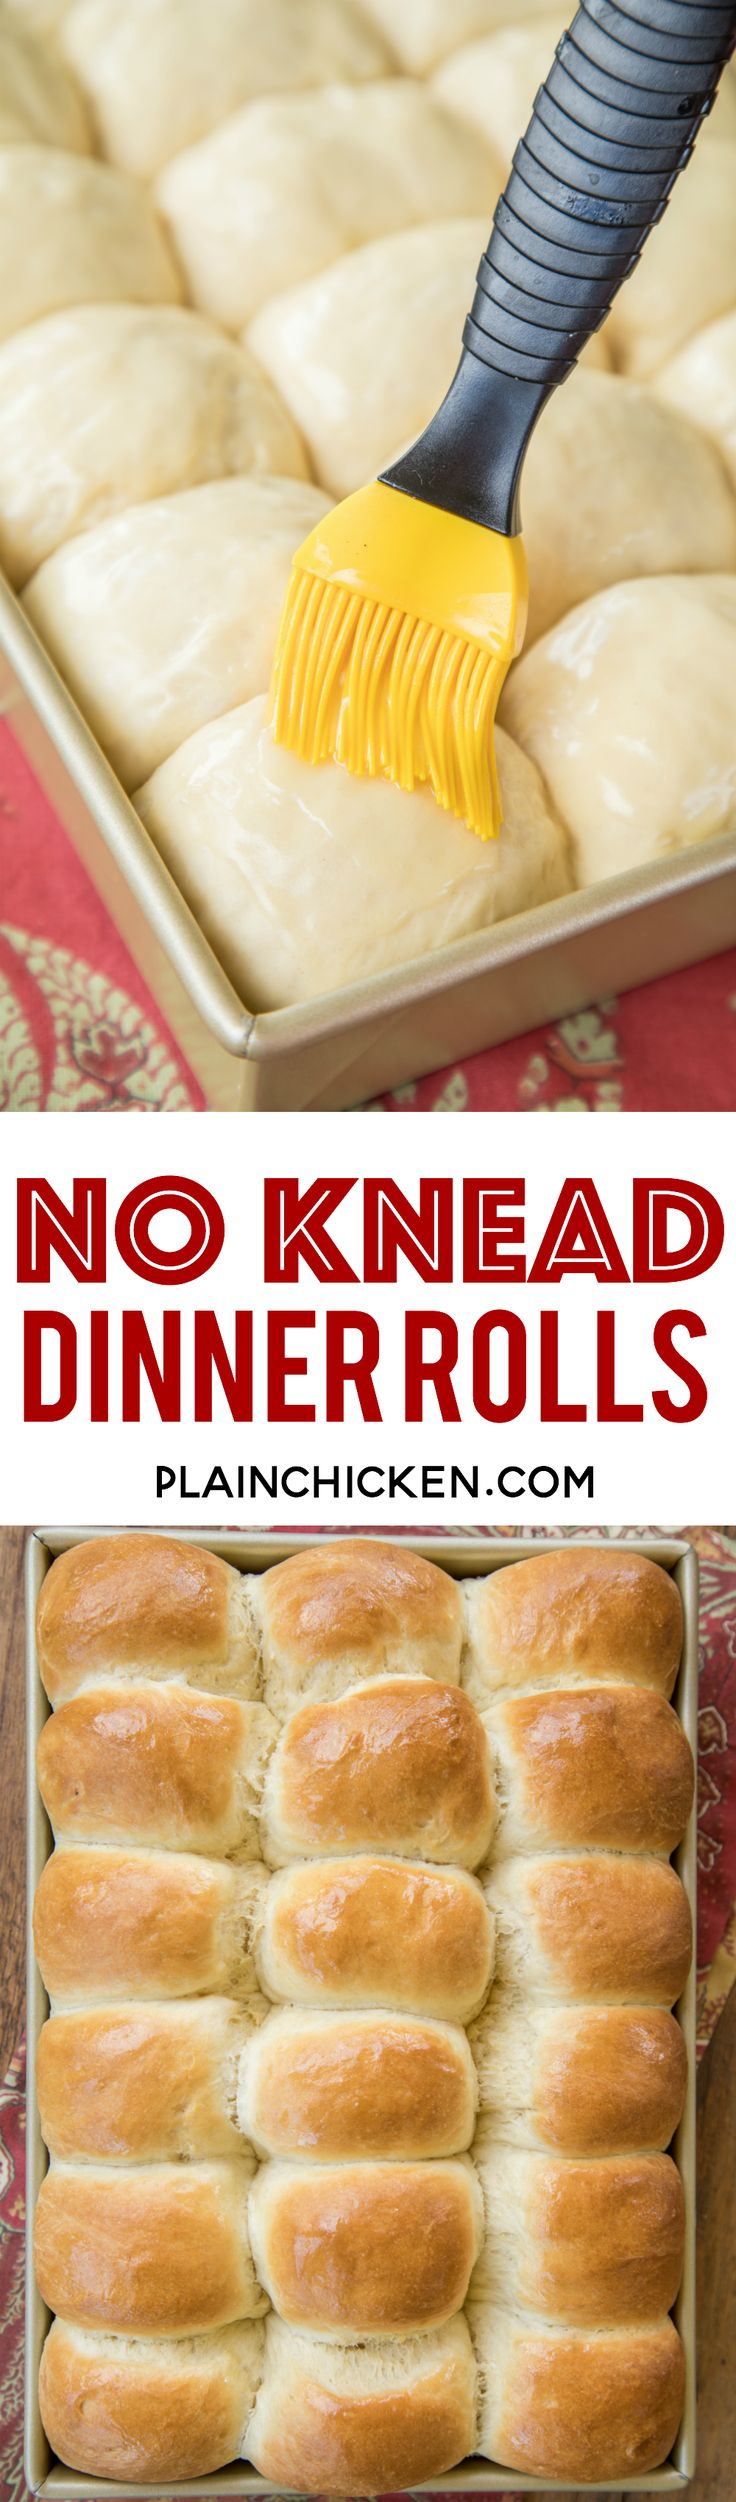 No Knead Dinner Rolls recipe - seriously THE BEST rolls EVER!! The best part is that you can make them the day before and bake them when you are ready. PERFECT for the holidays!!! Water, sugar, eggs, flour, butter and yeast. Super simple to make and they taste amazing. Great for making leftover turkey and ham sandwiches at the holidays!!